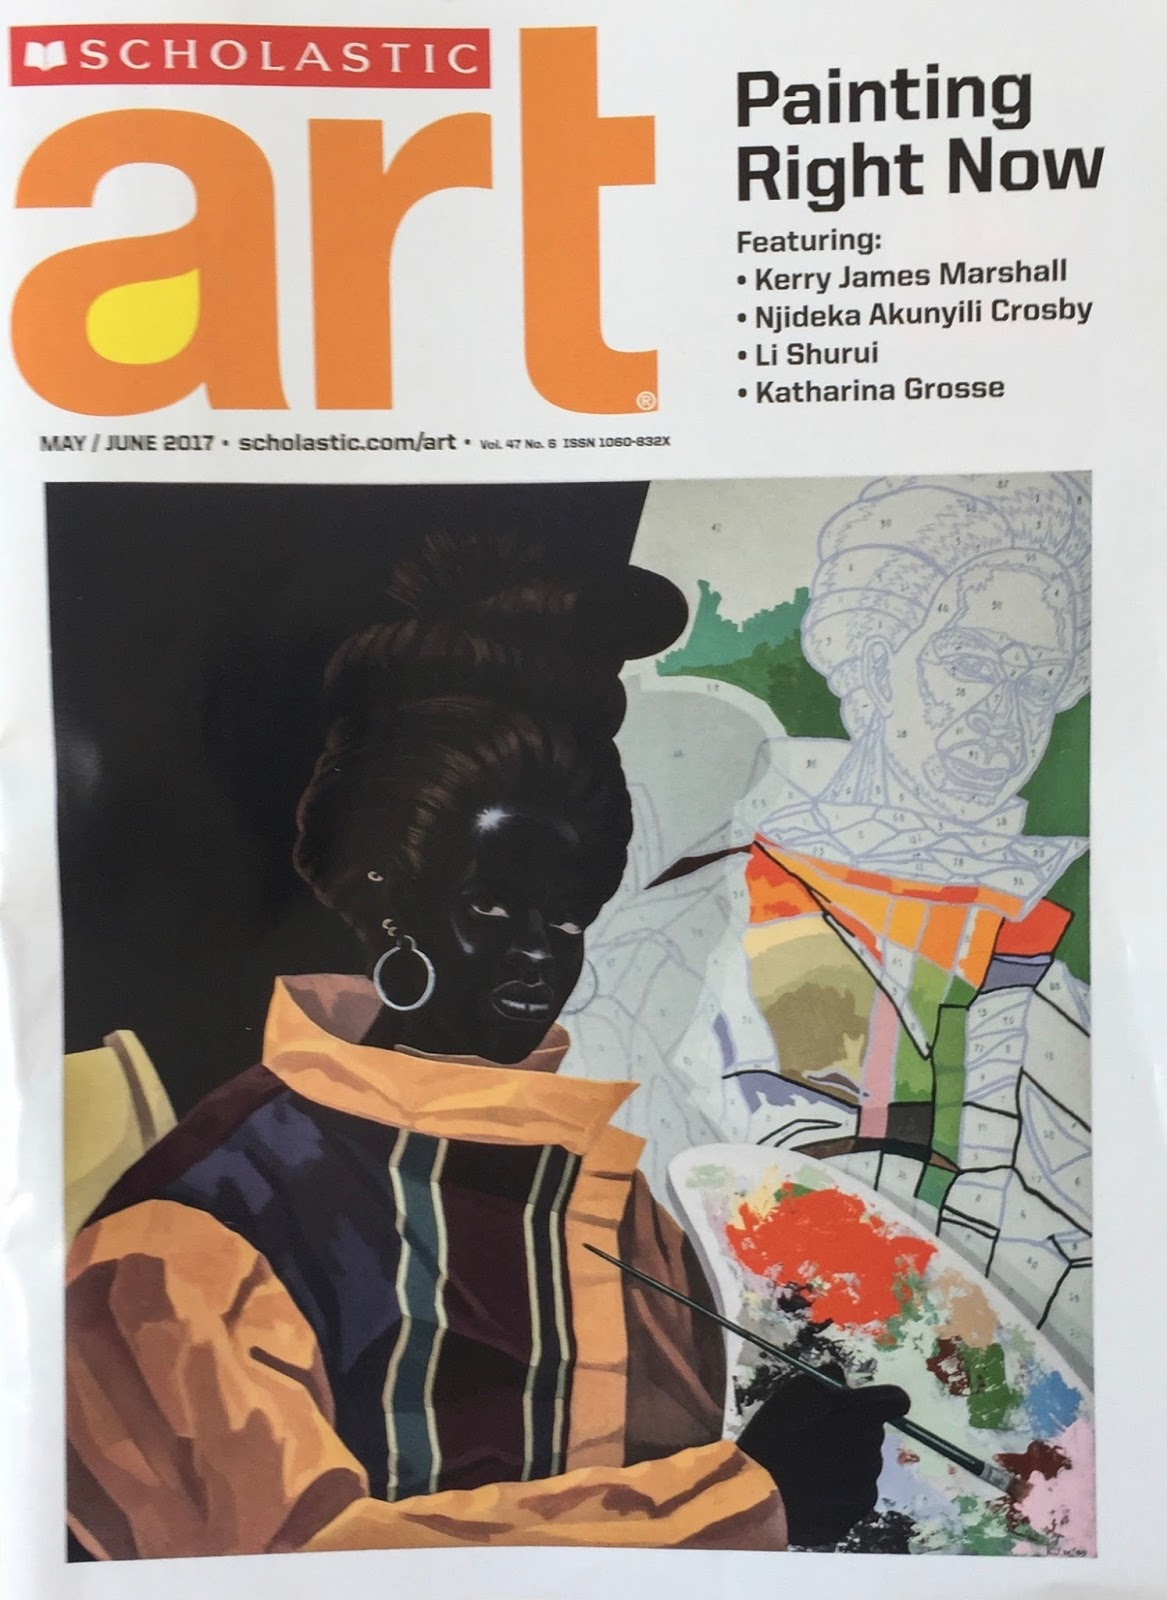 Watercolor artist magazine subscription - There Are 6 Issues Published Each Year By Scholastic Art Magazine An Art Magazine For Middle School And High School Students Though There Is Lesson Plans